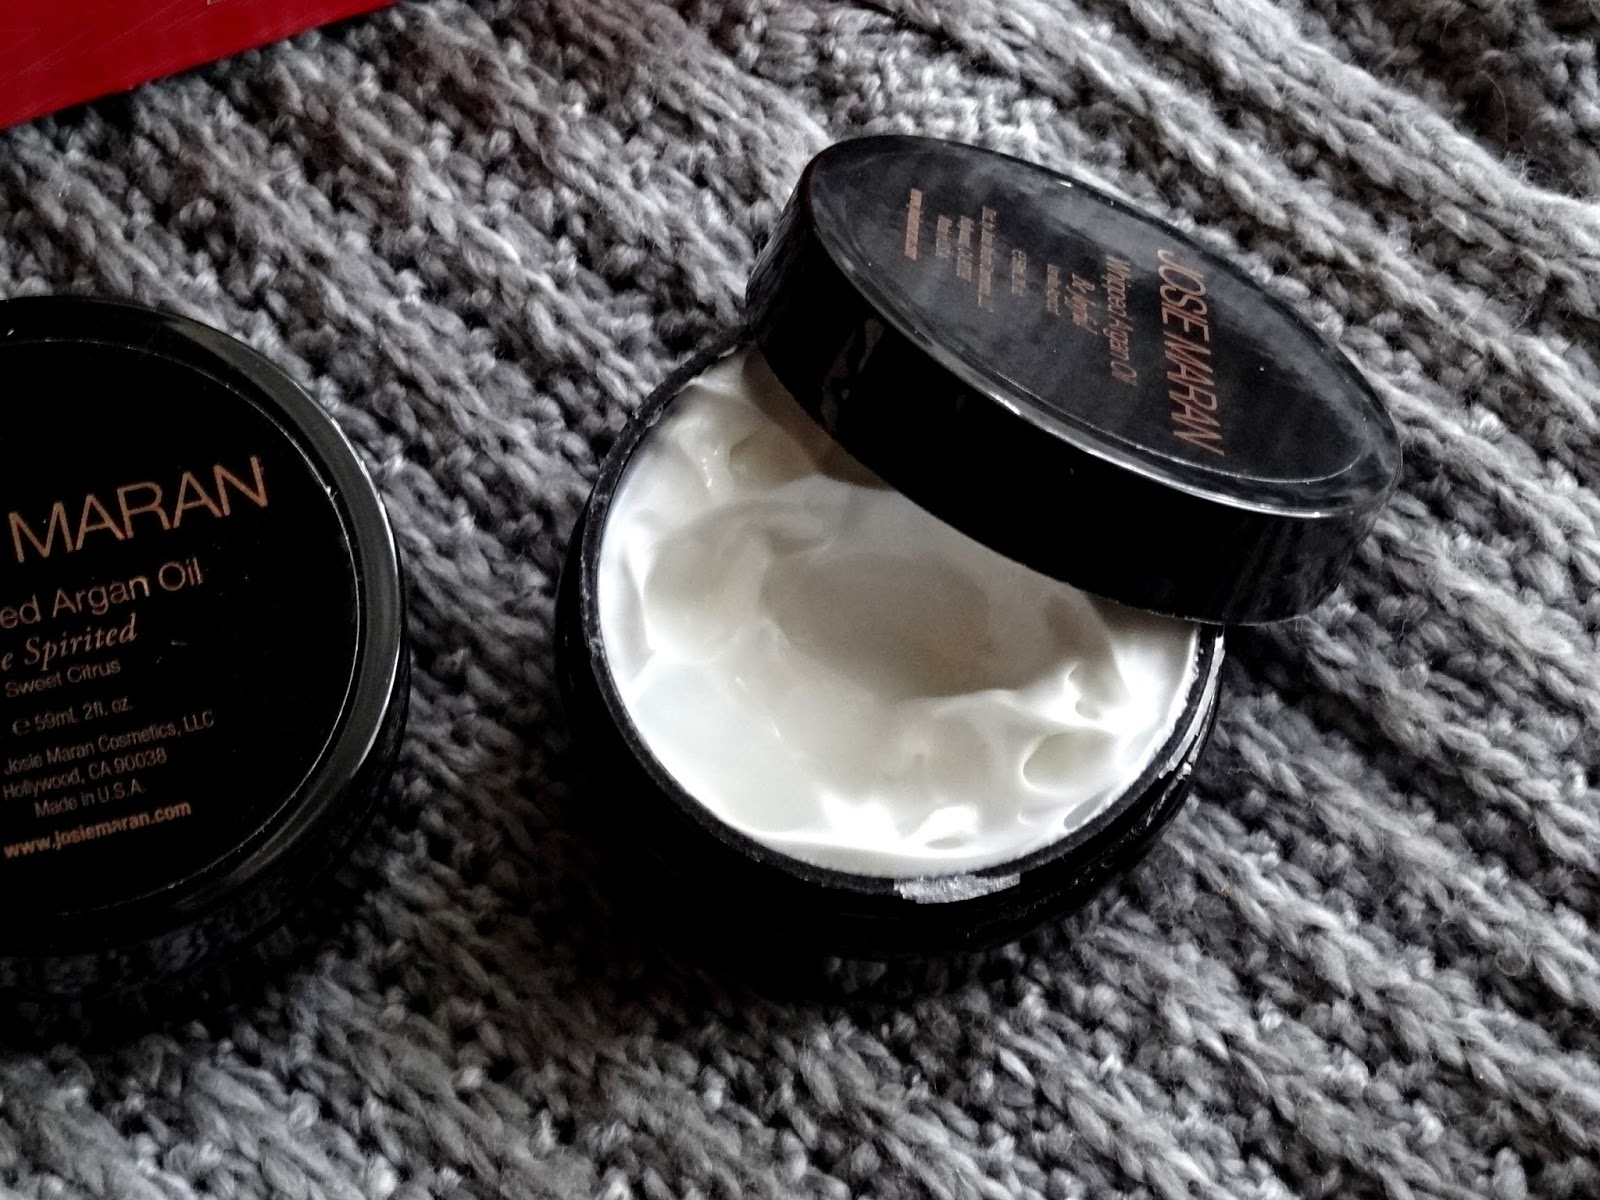 Josie Maran Winter Dreams Whipped Argan Oil Body Butter Duo